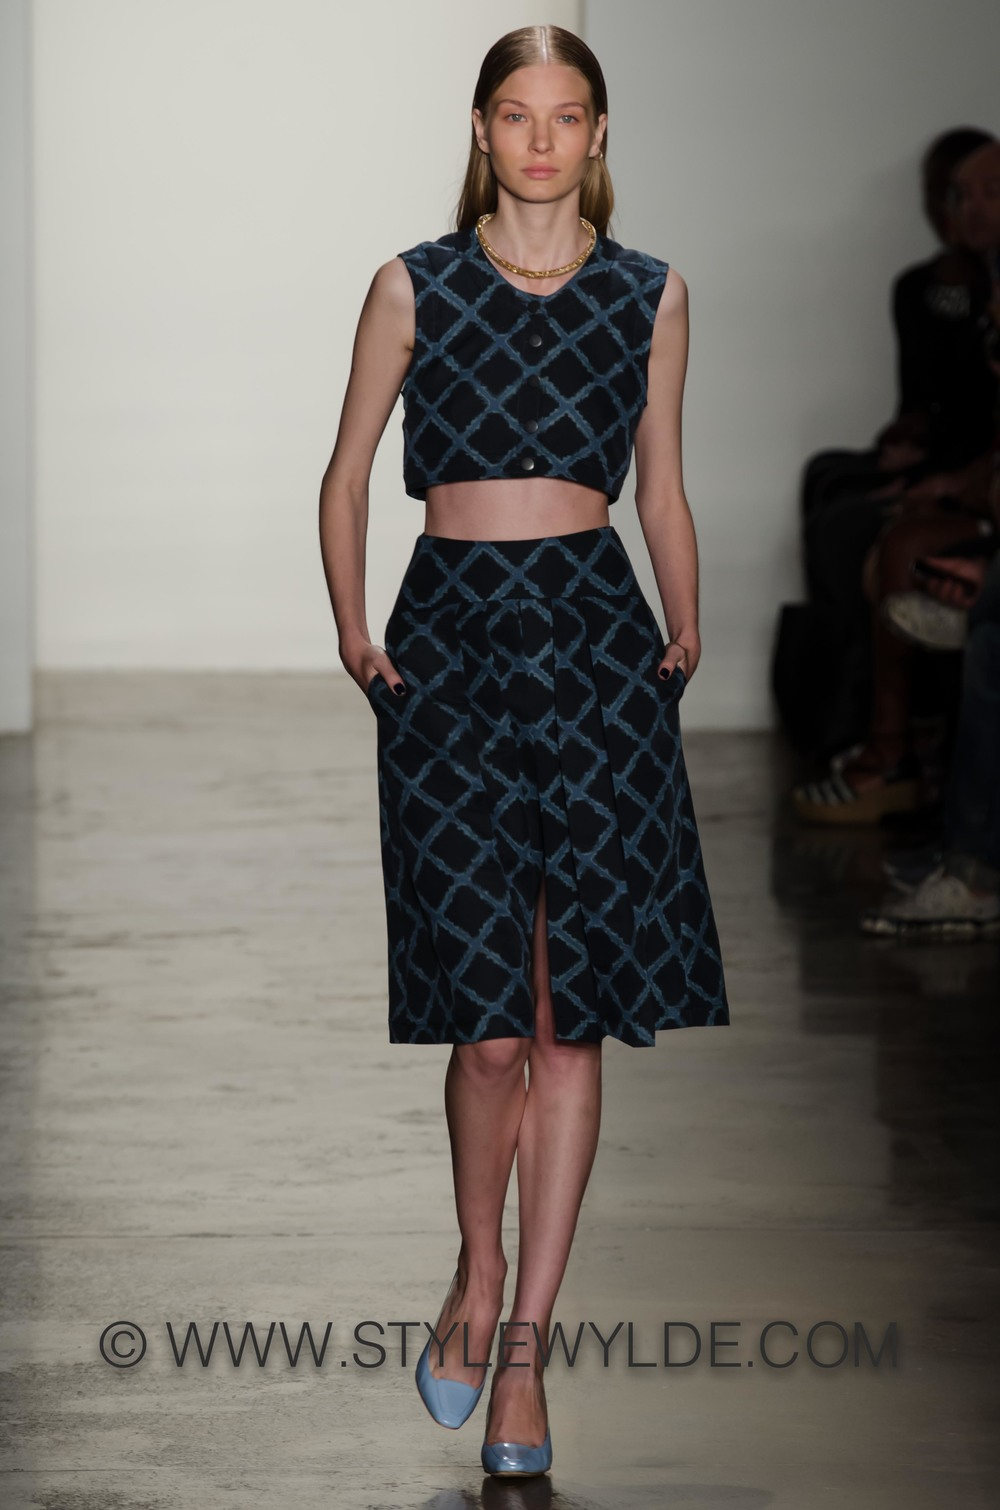 stylewylde_timo_weiland_gallery_ss2014-34.jpg